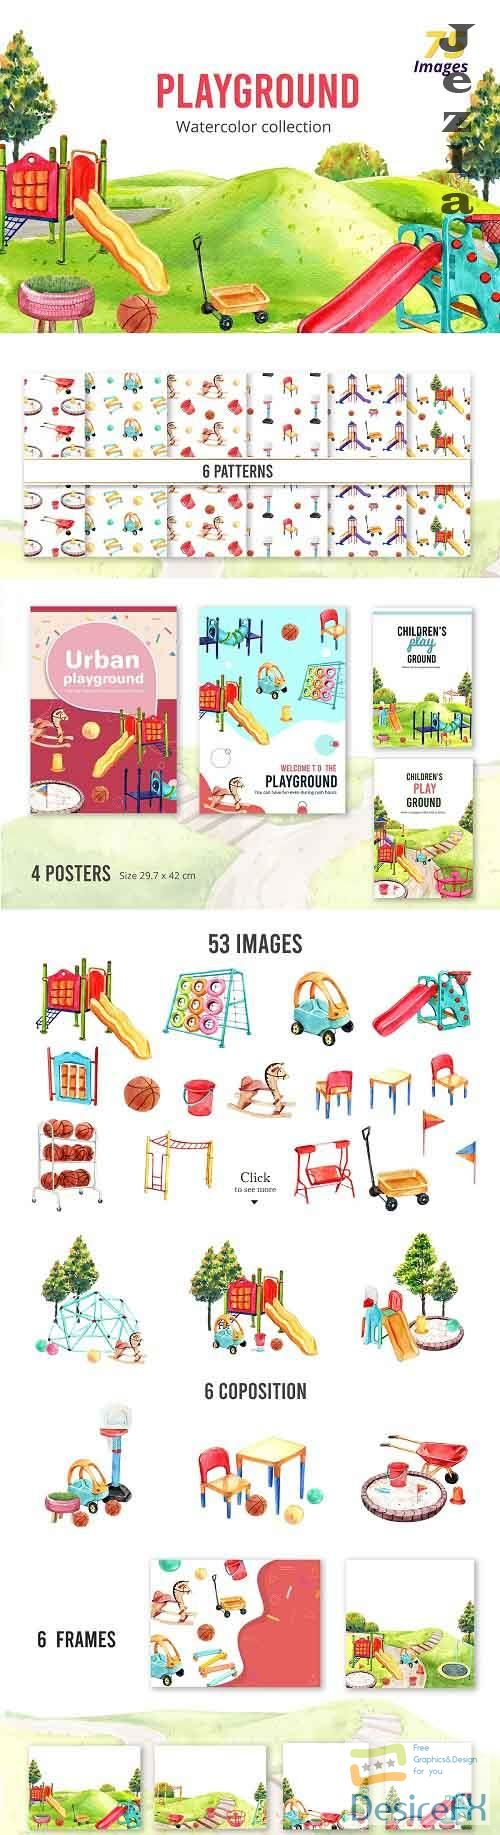 Playground Watercolor Collection - 5529626